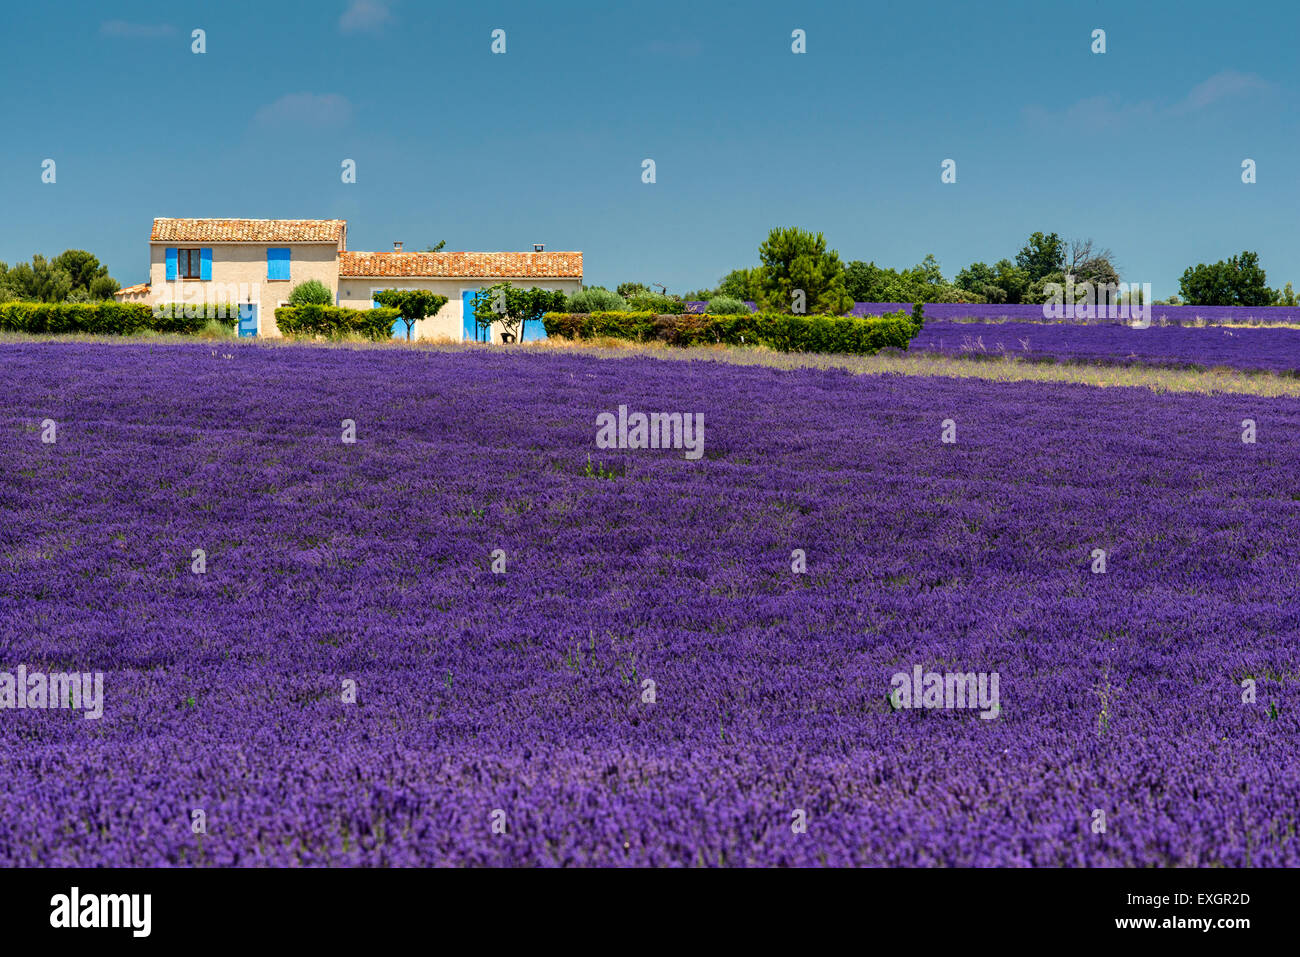 Scenic lavender field in Provence, France - Stock Image